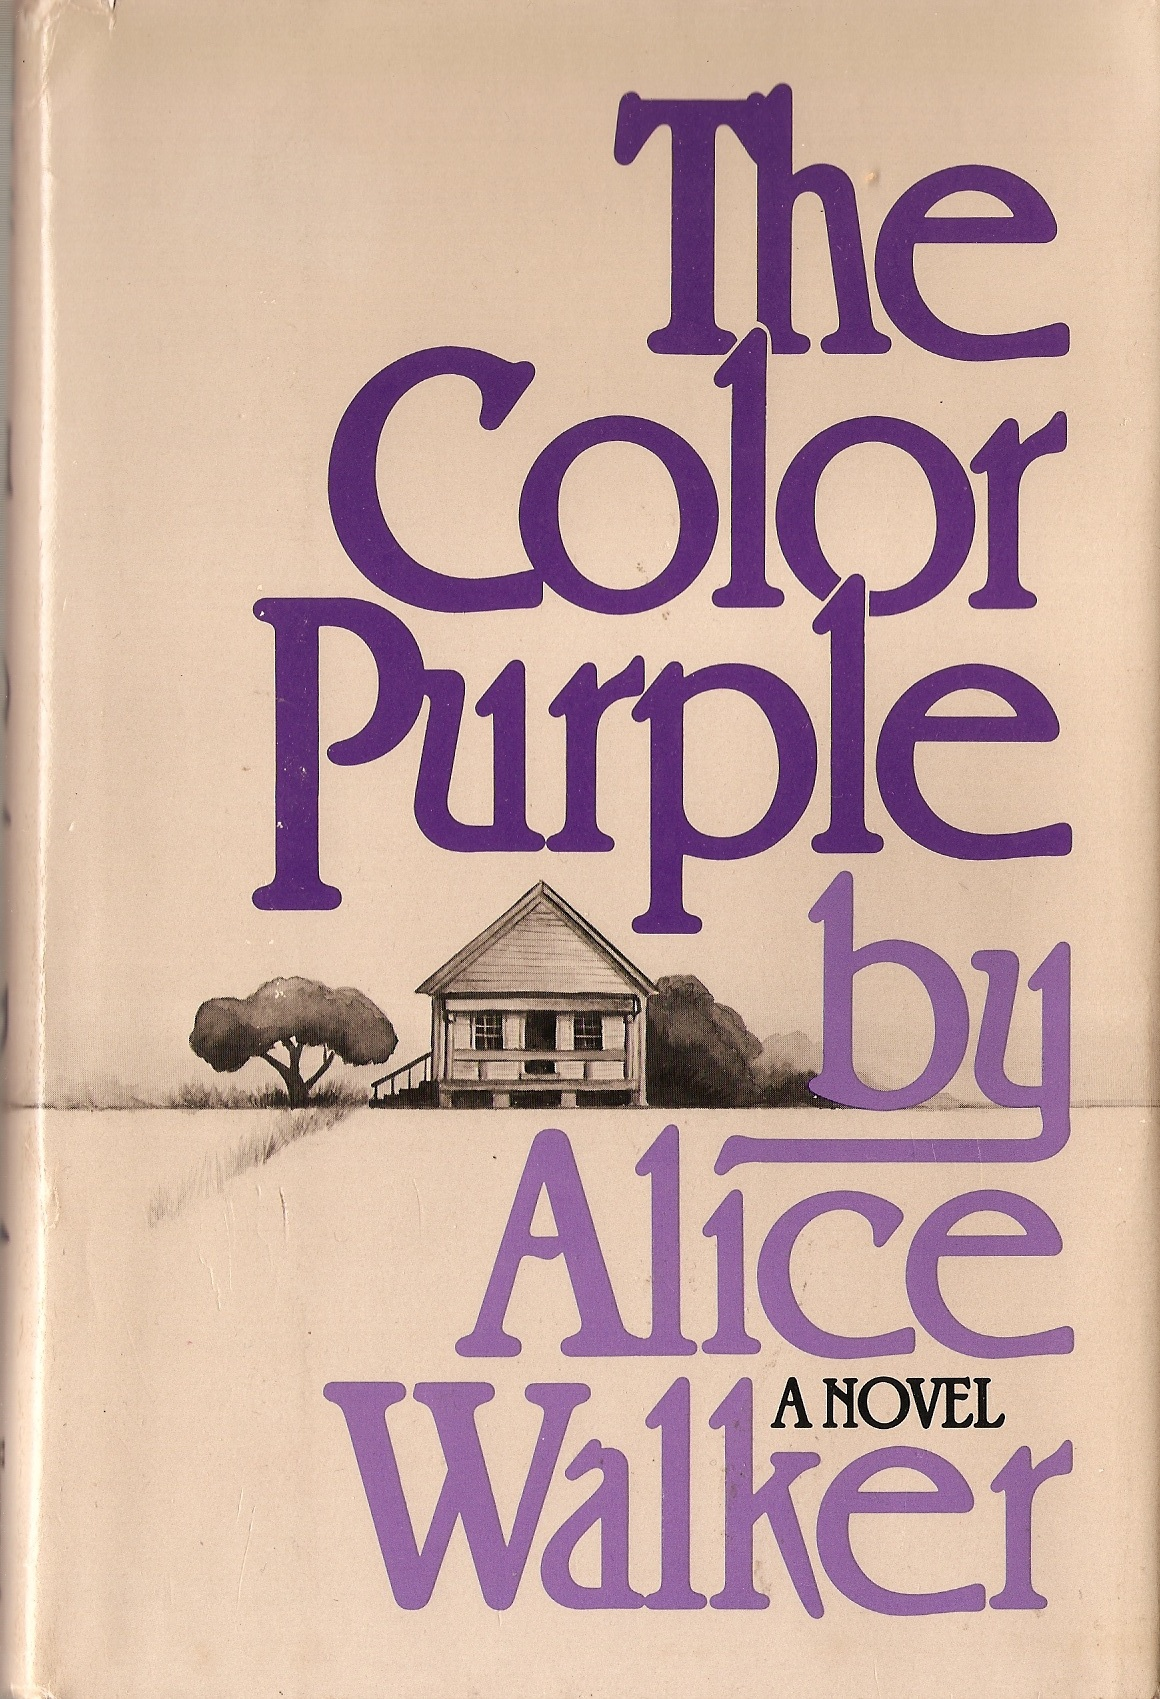 alice walker essay alice walker essay academic essay alice walker  the color purple acirc annemichael the color purple by alice walker alice walker essay